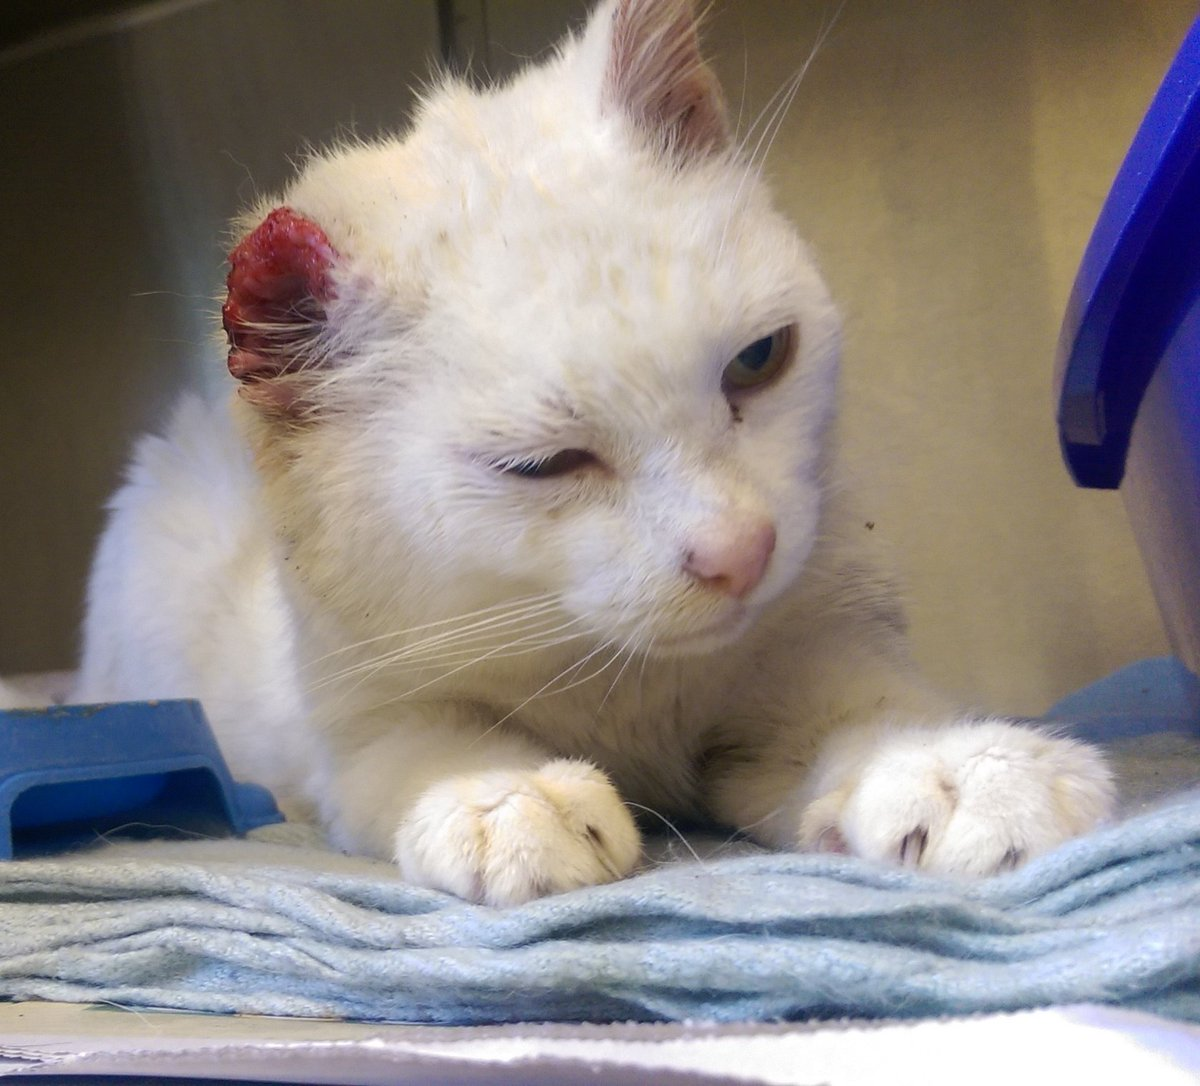 Shakirafree On Twitter Don T Forget To Advise Owners Of White Cats To Protect Their Ears This Poor Boy Has Severe Skin Cancer Whatvnsdo